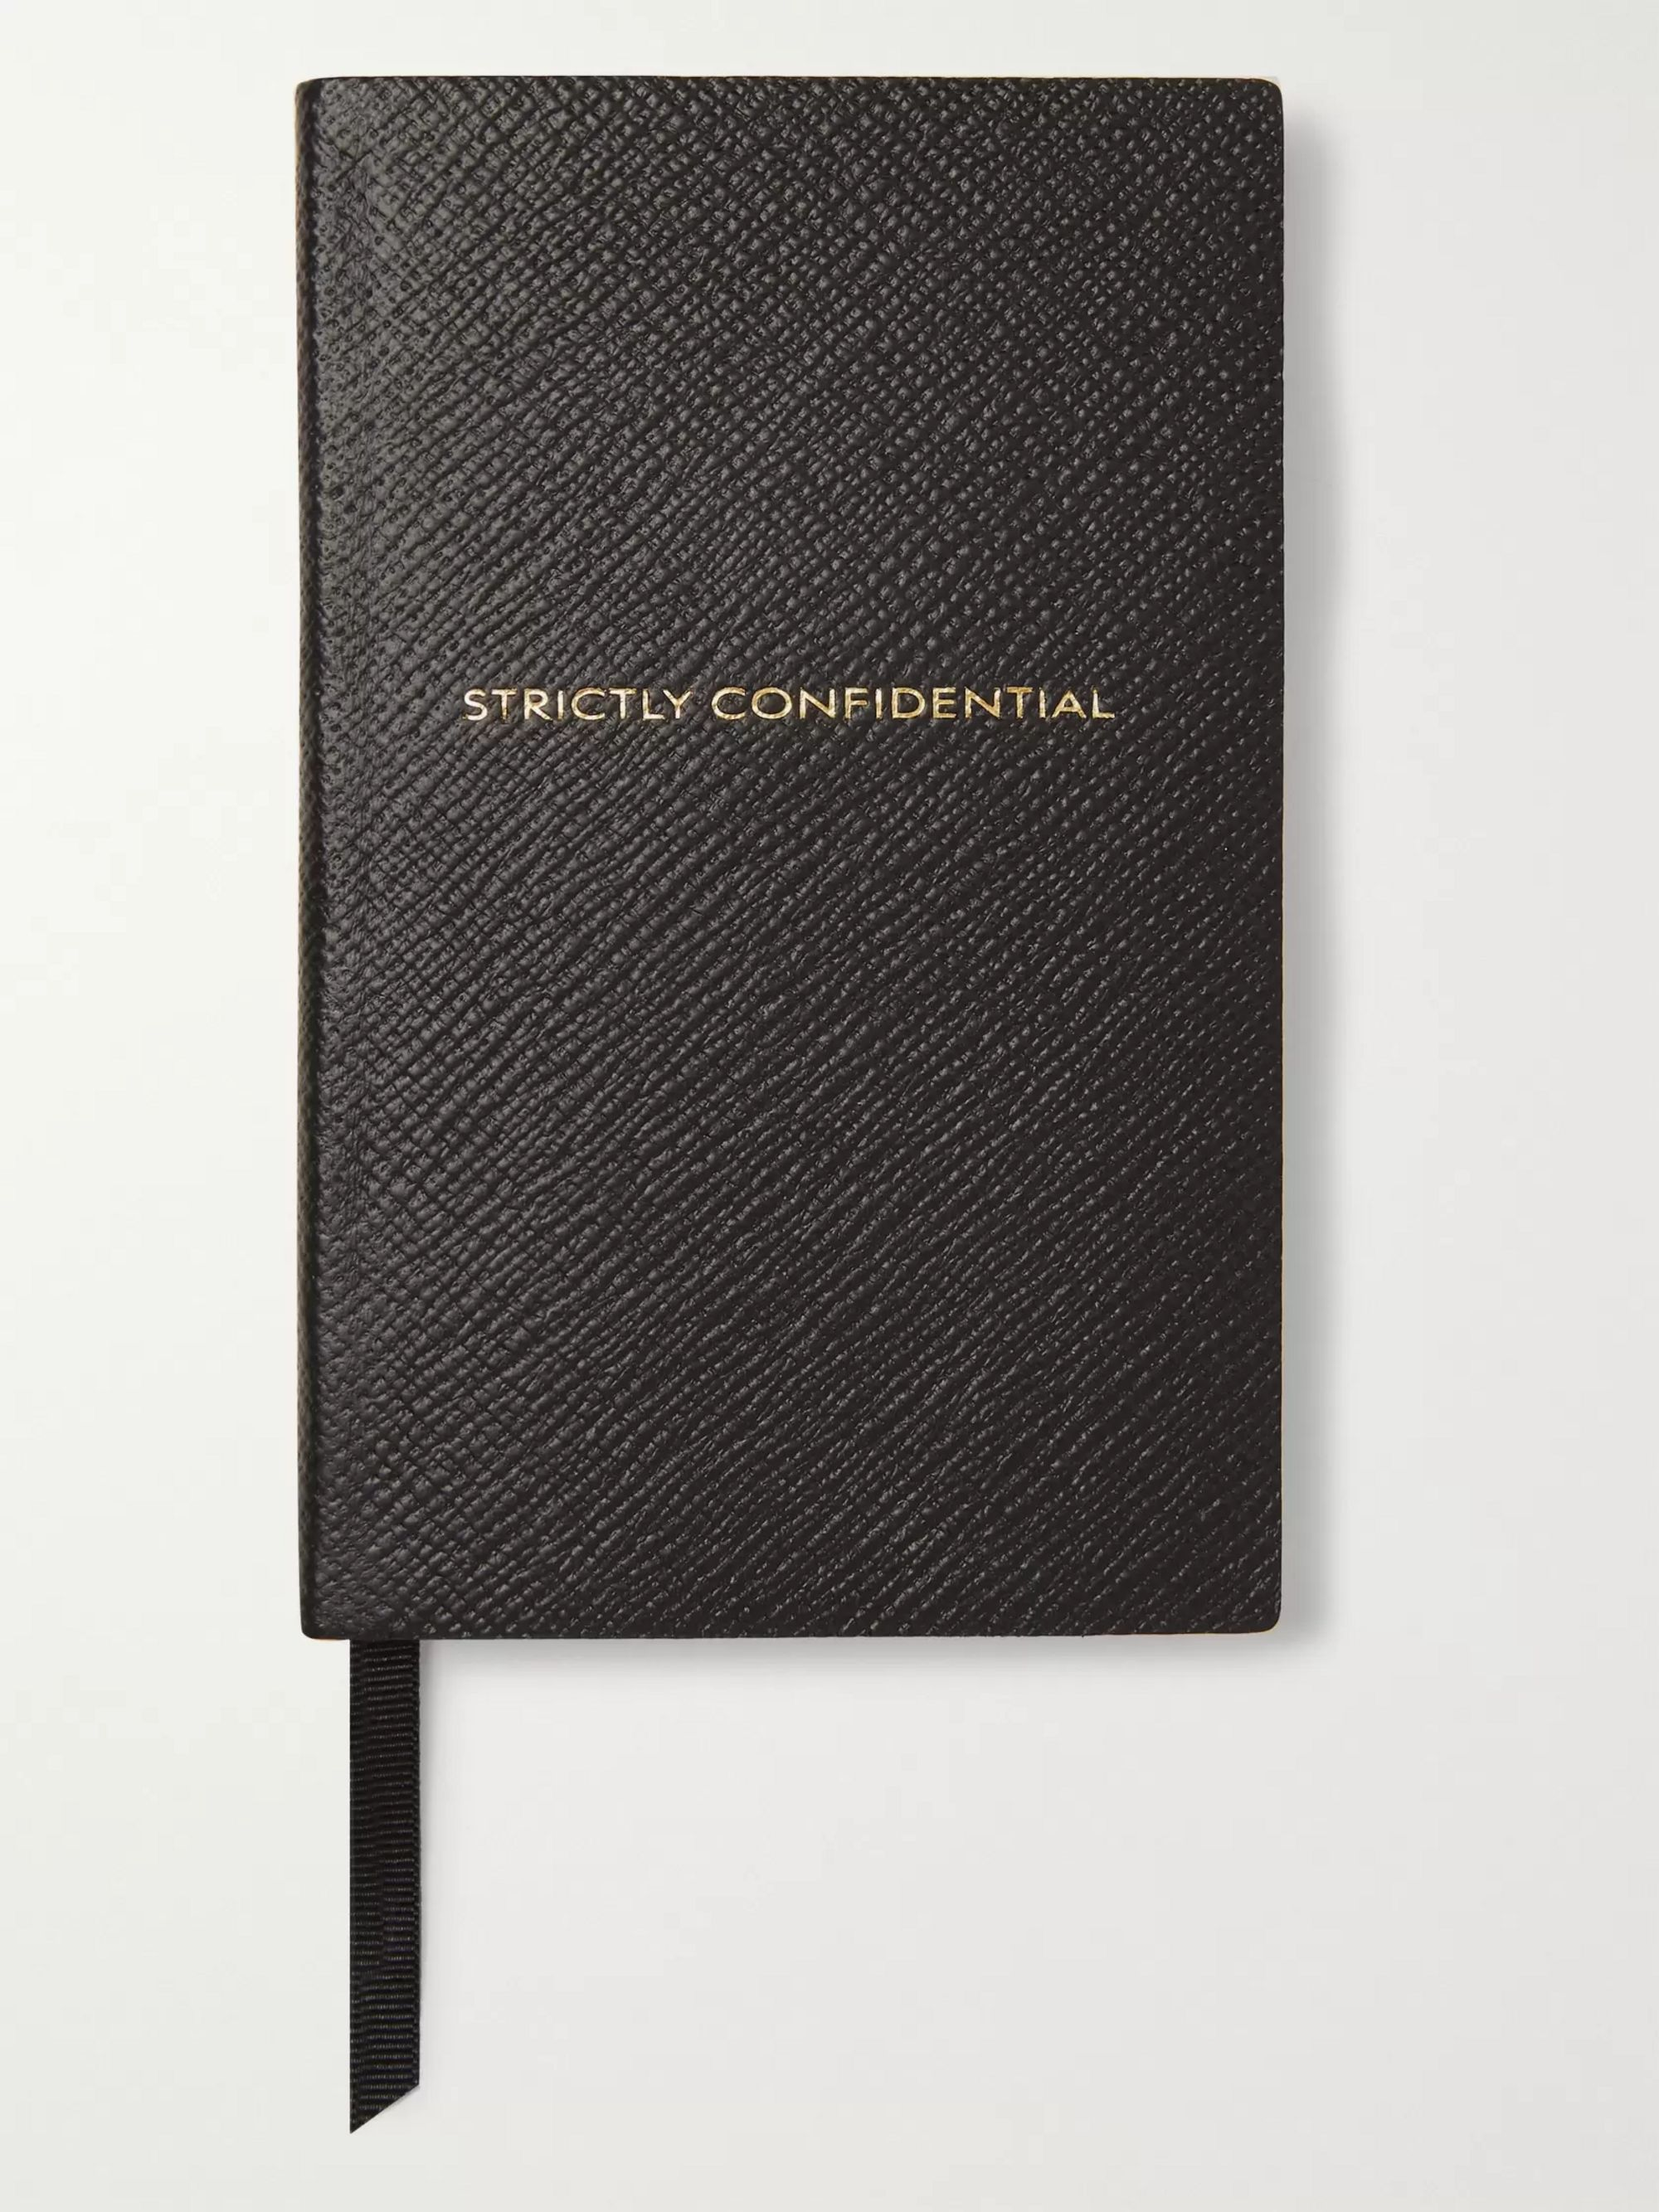 Smythson Panama Strictly Confidential Cross-Grain Leather Notebook